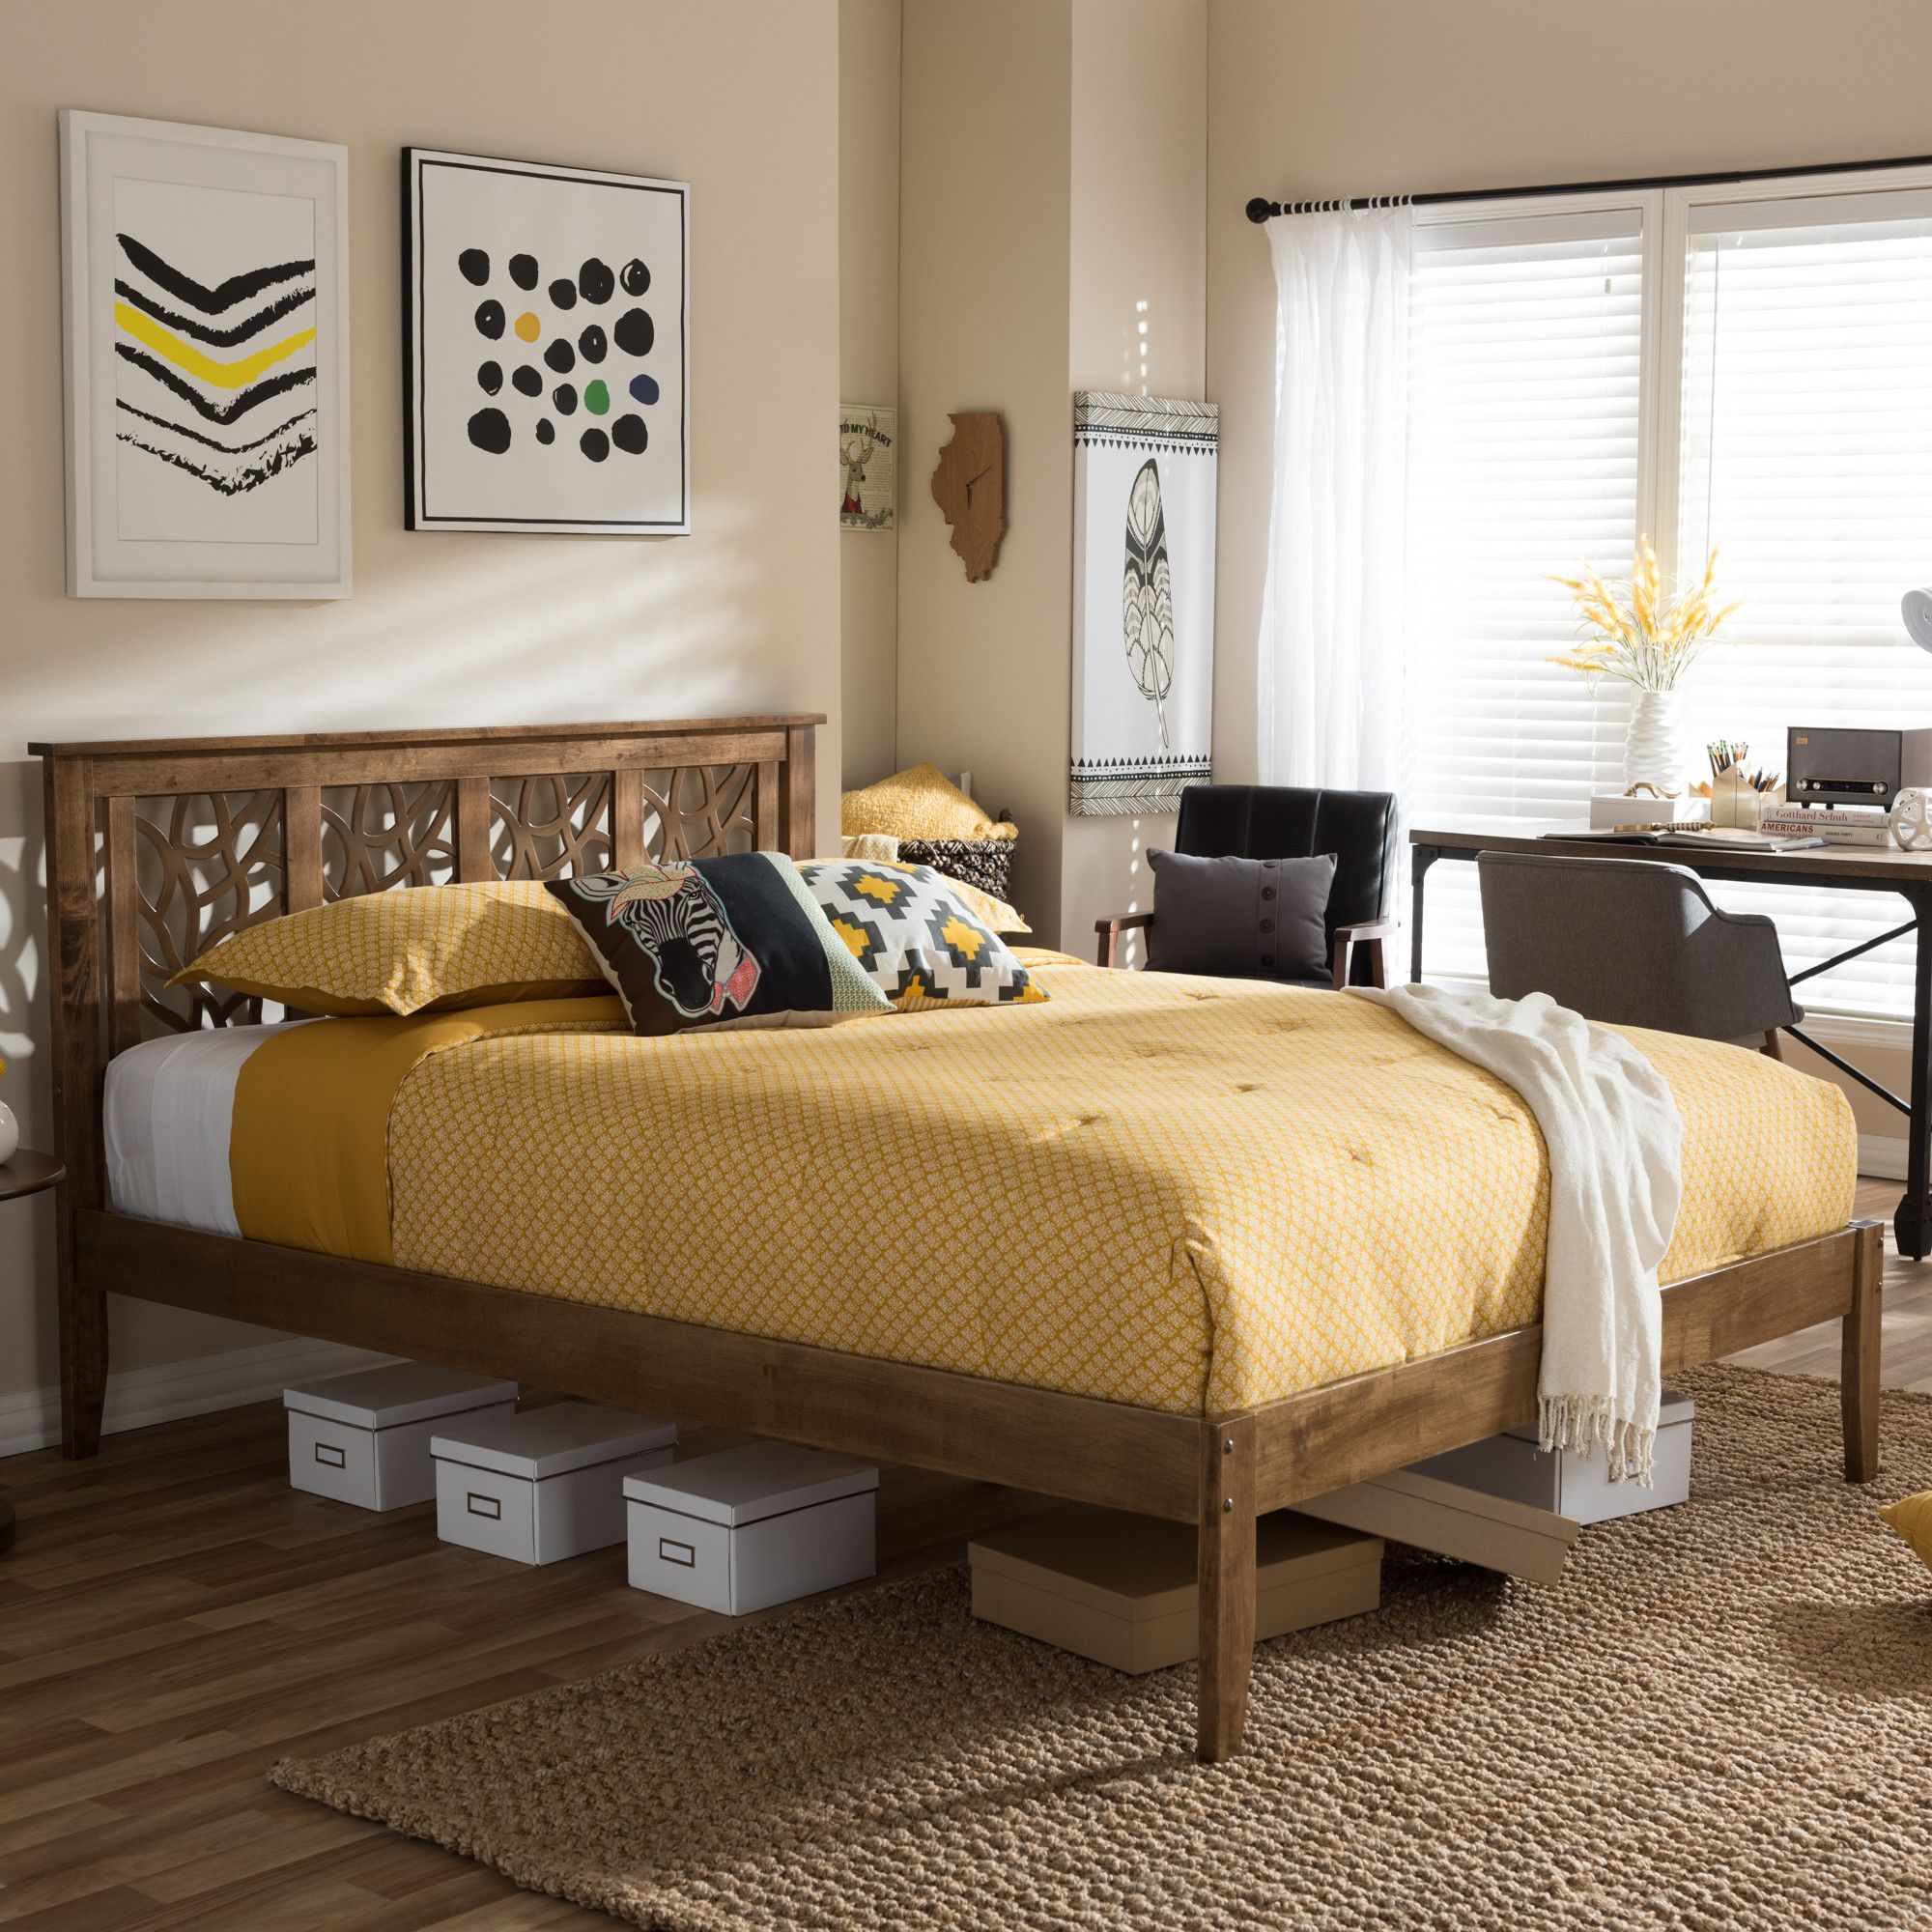 Features Tapered legs. Tree branches inspired headboard